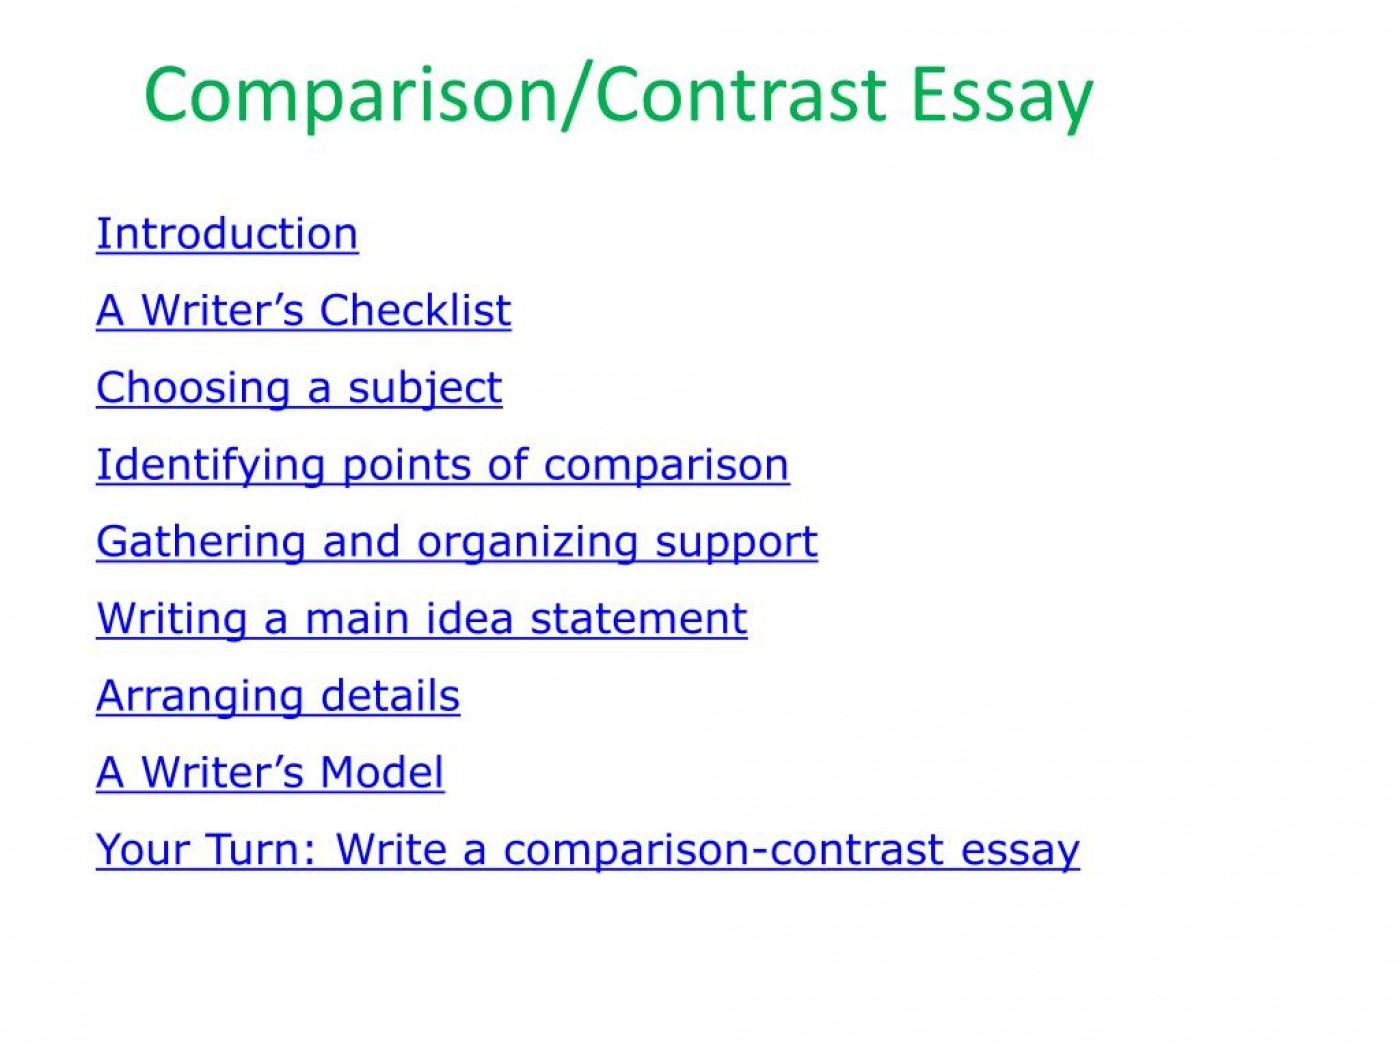 005 Essay Example An Of Compare And Contrast Comparison